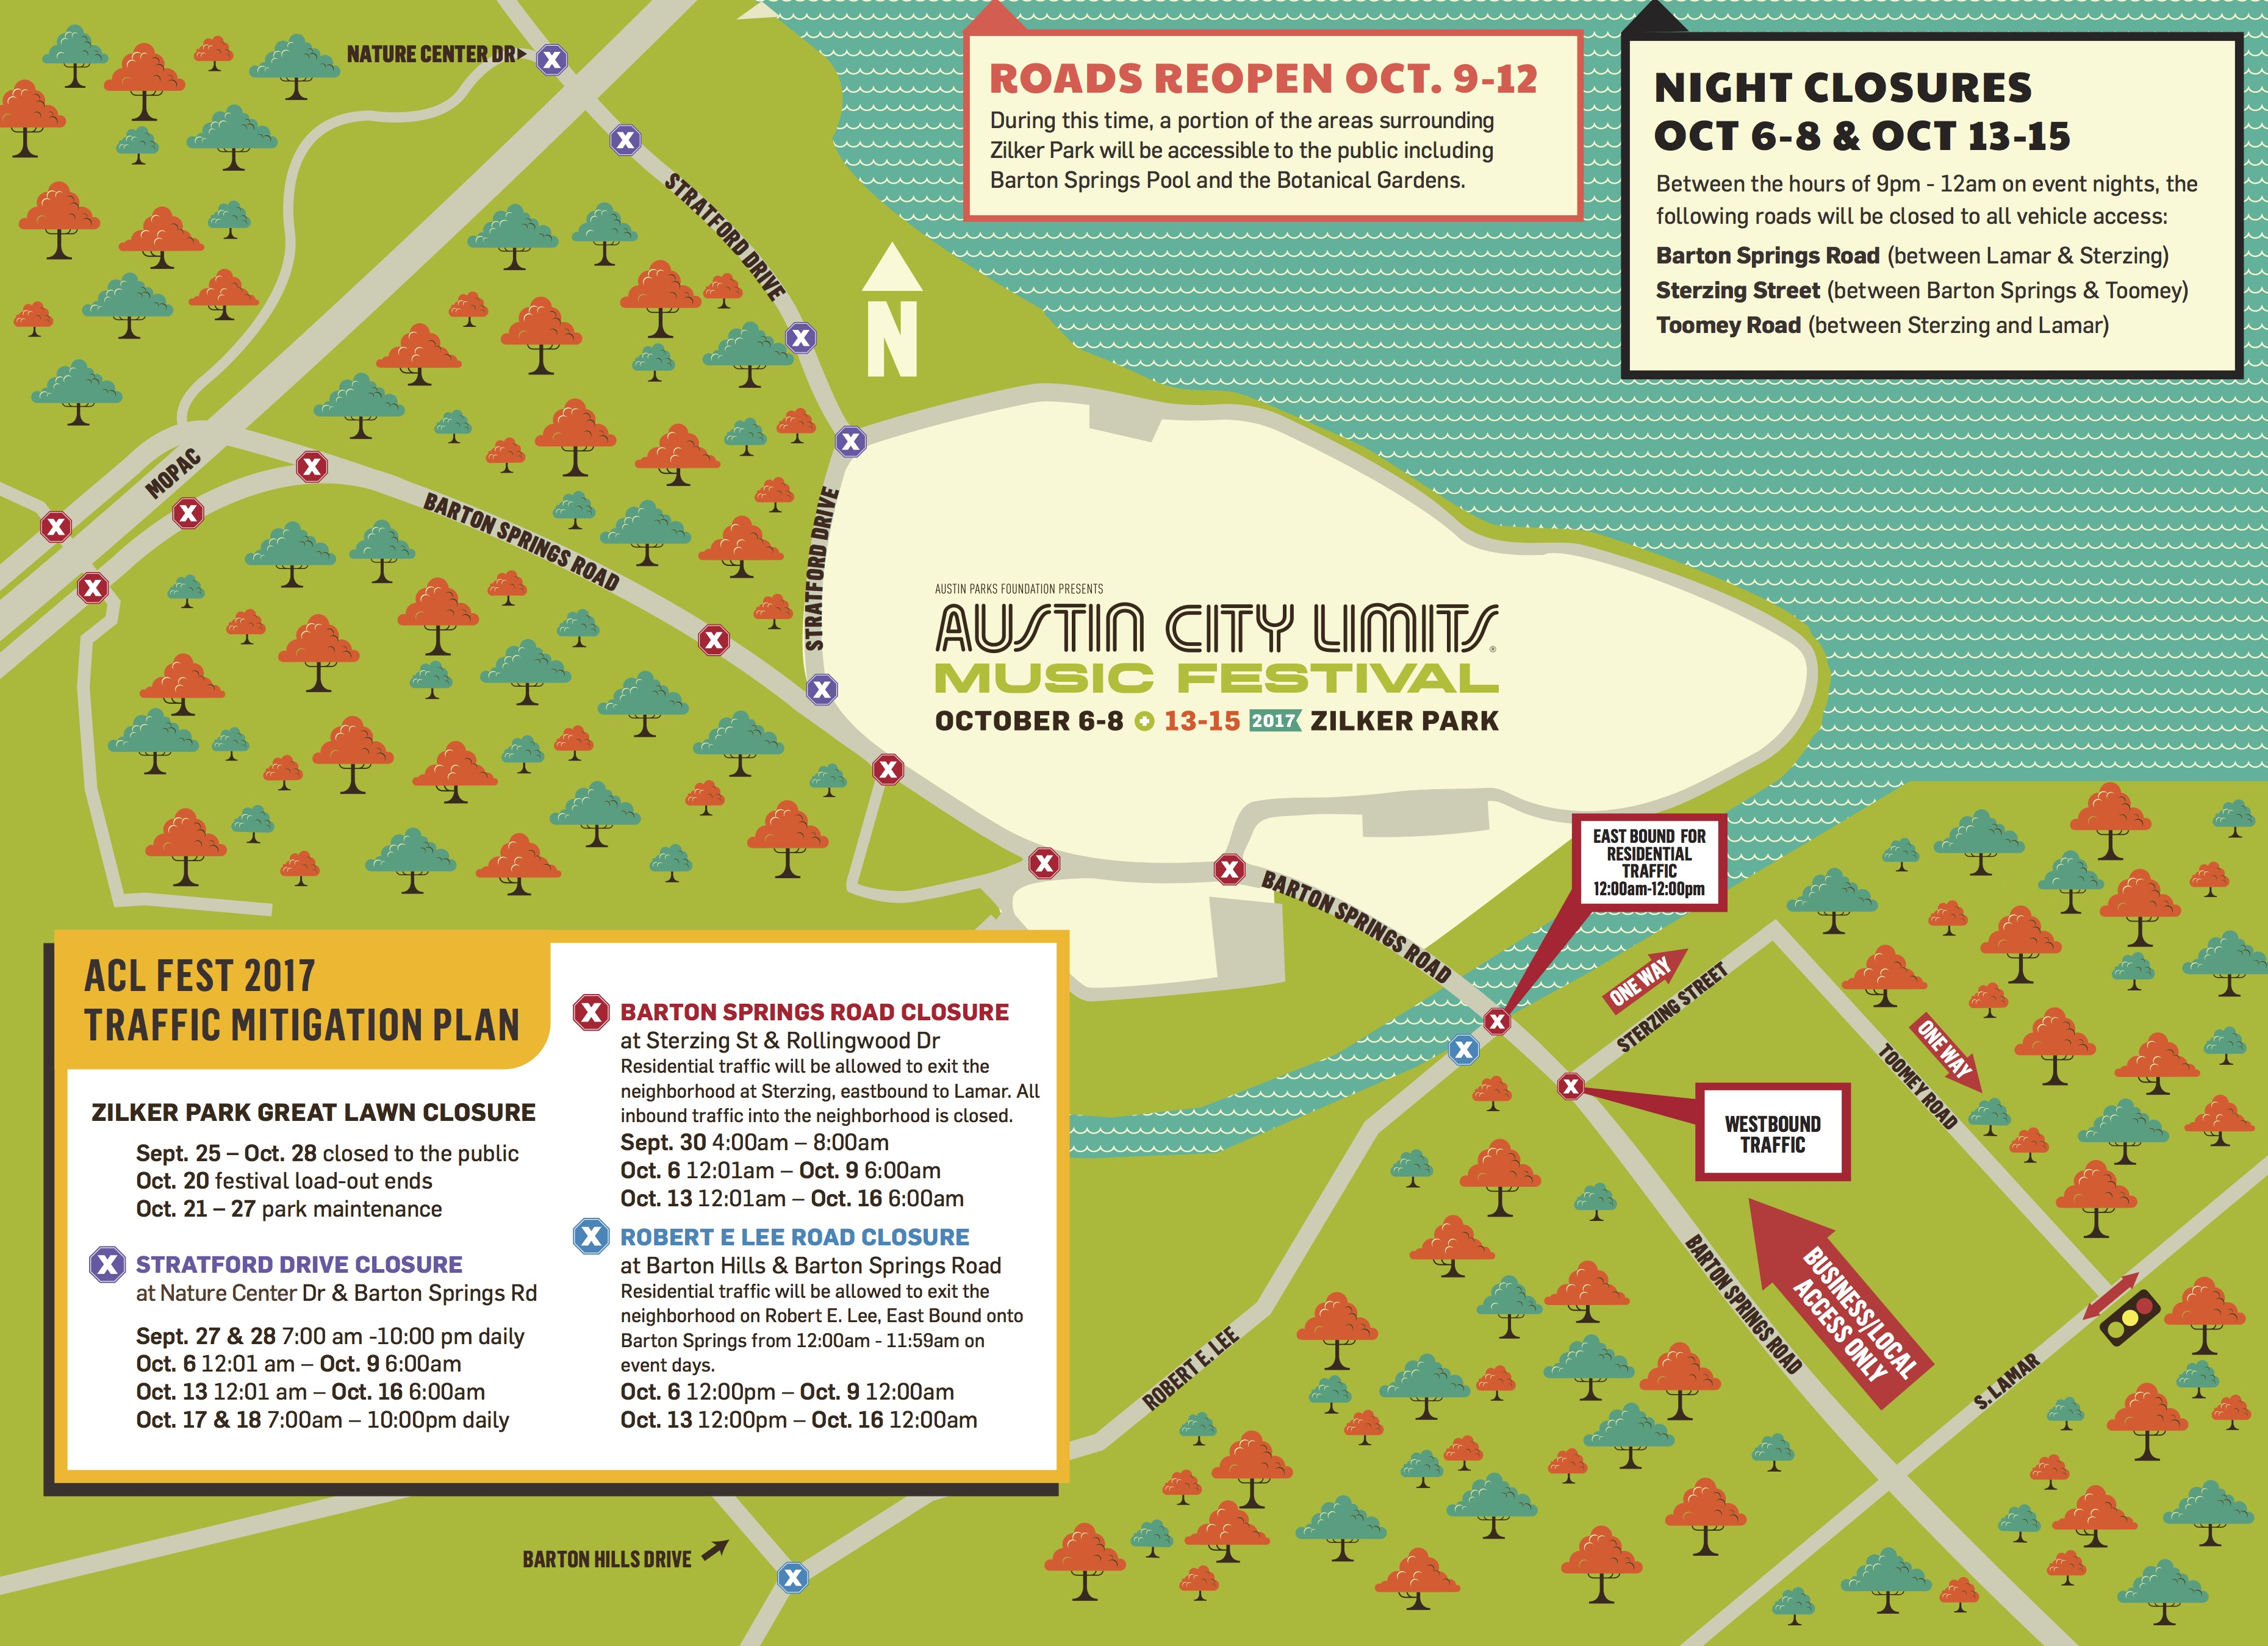 ACL Fest Weekend Street Closures Maps And - I drive us closure map